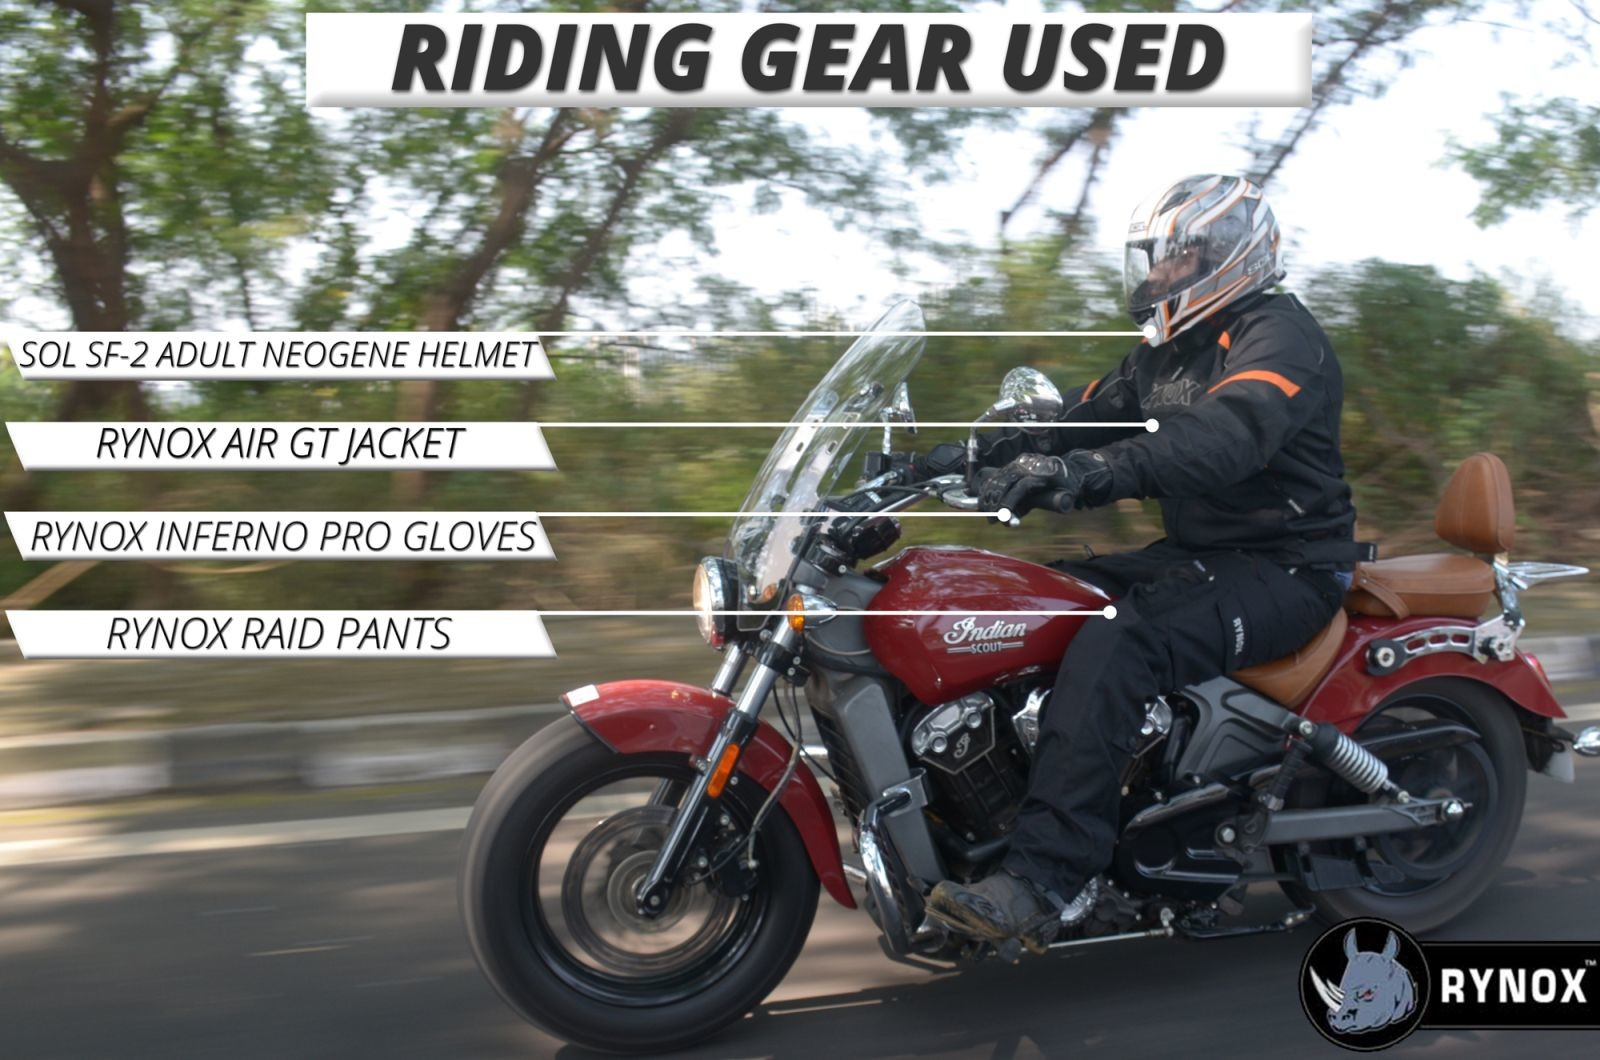 Indian-Scout-Riding-Gear